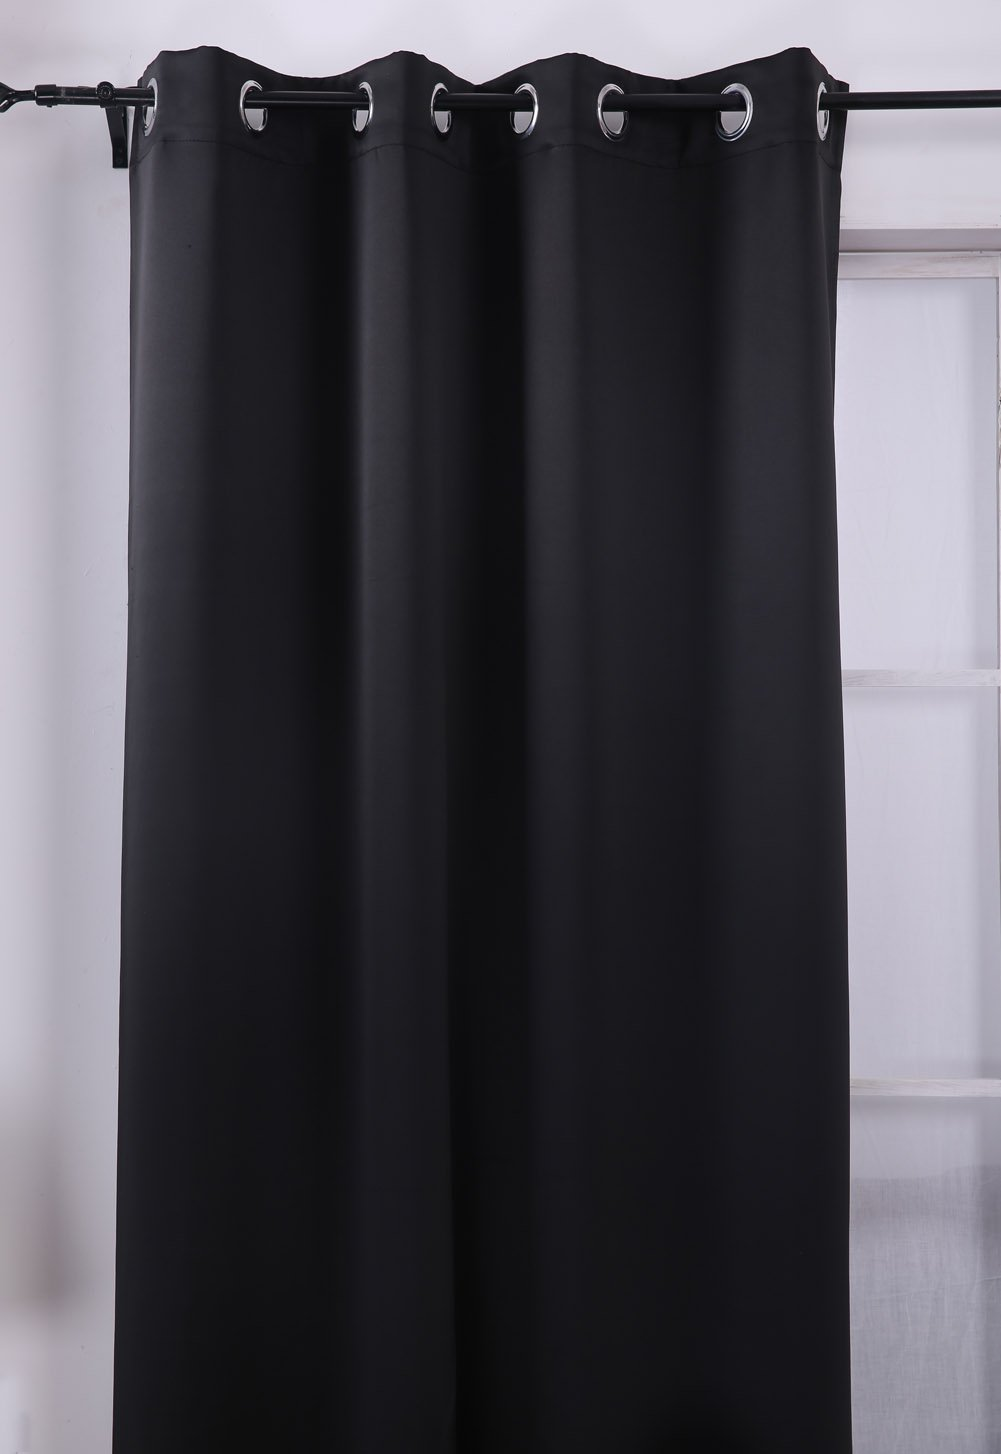 Deconovo Black Thermal Insulated Blackout Panel Curtain 52